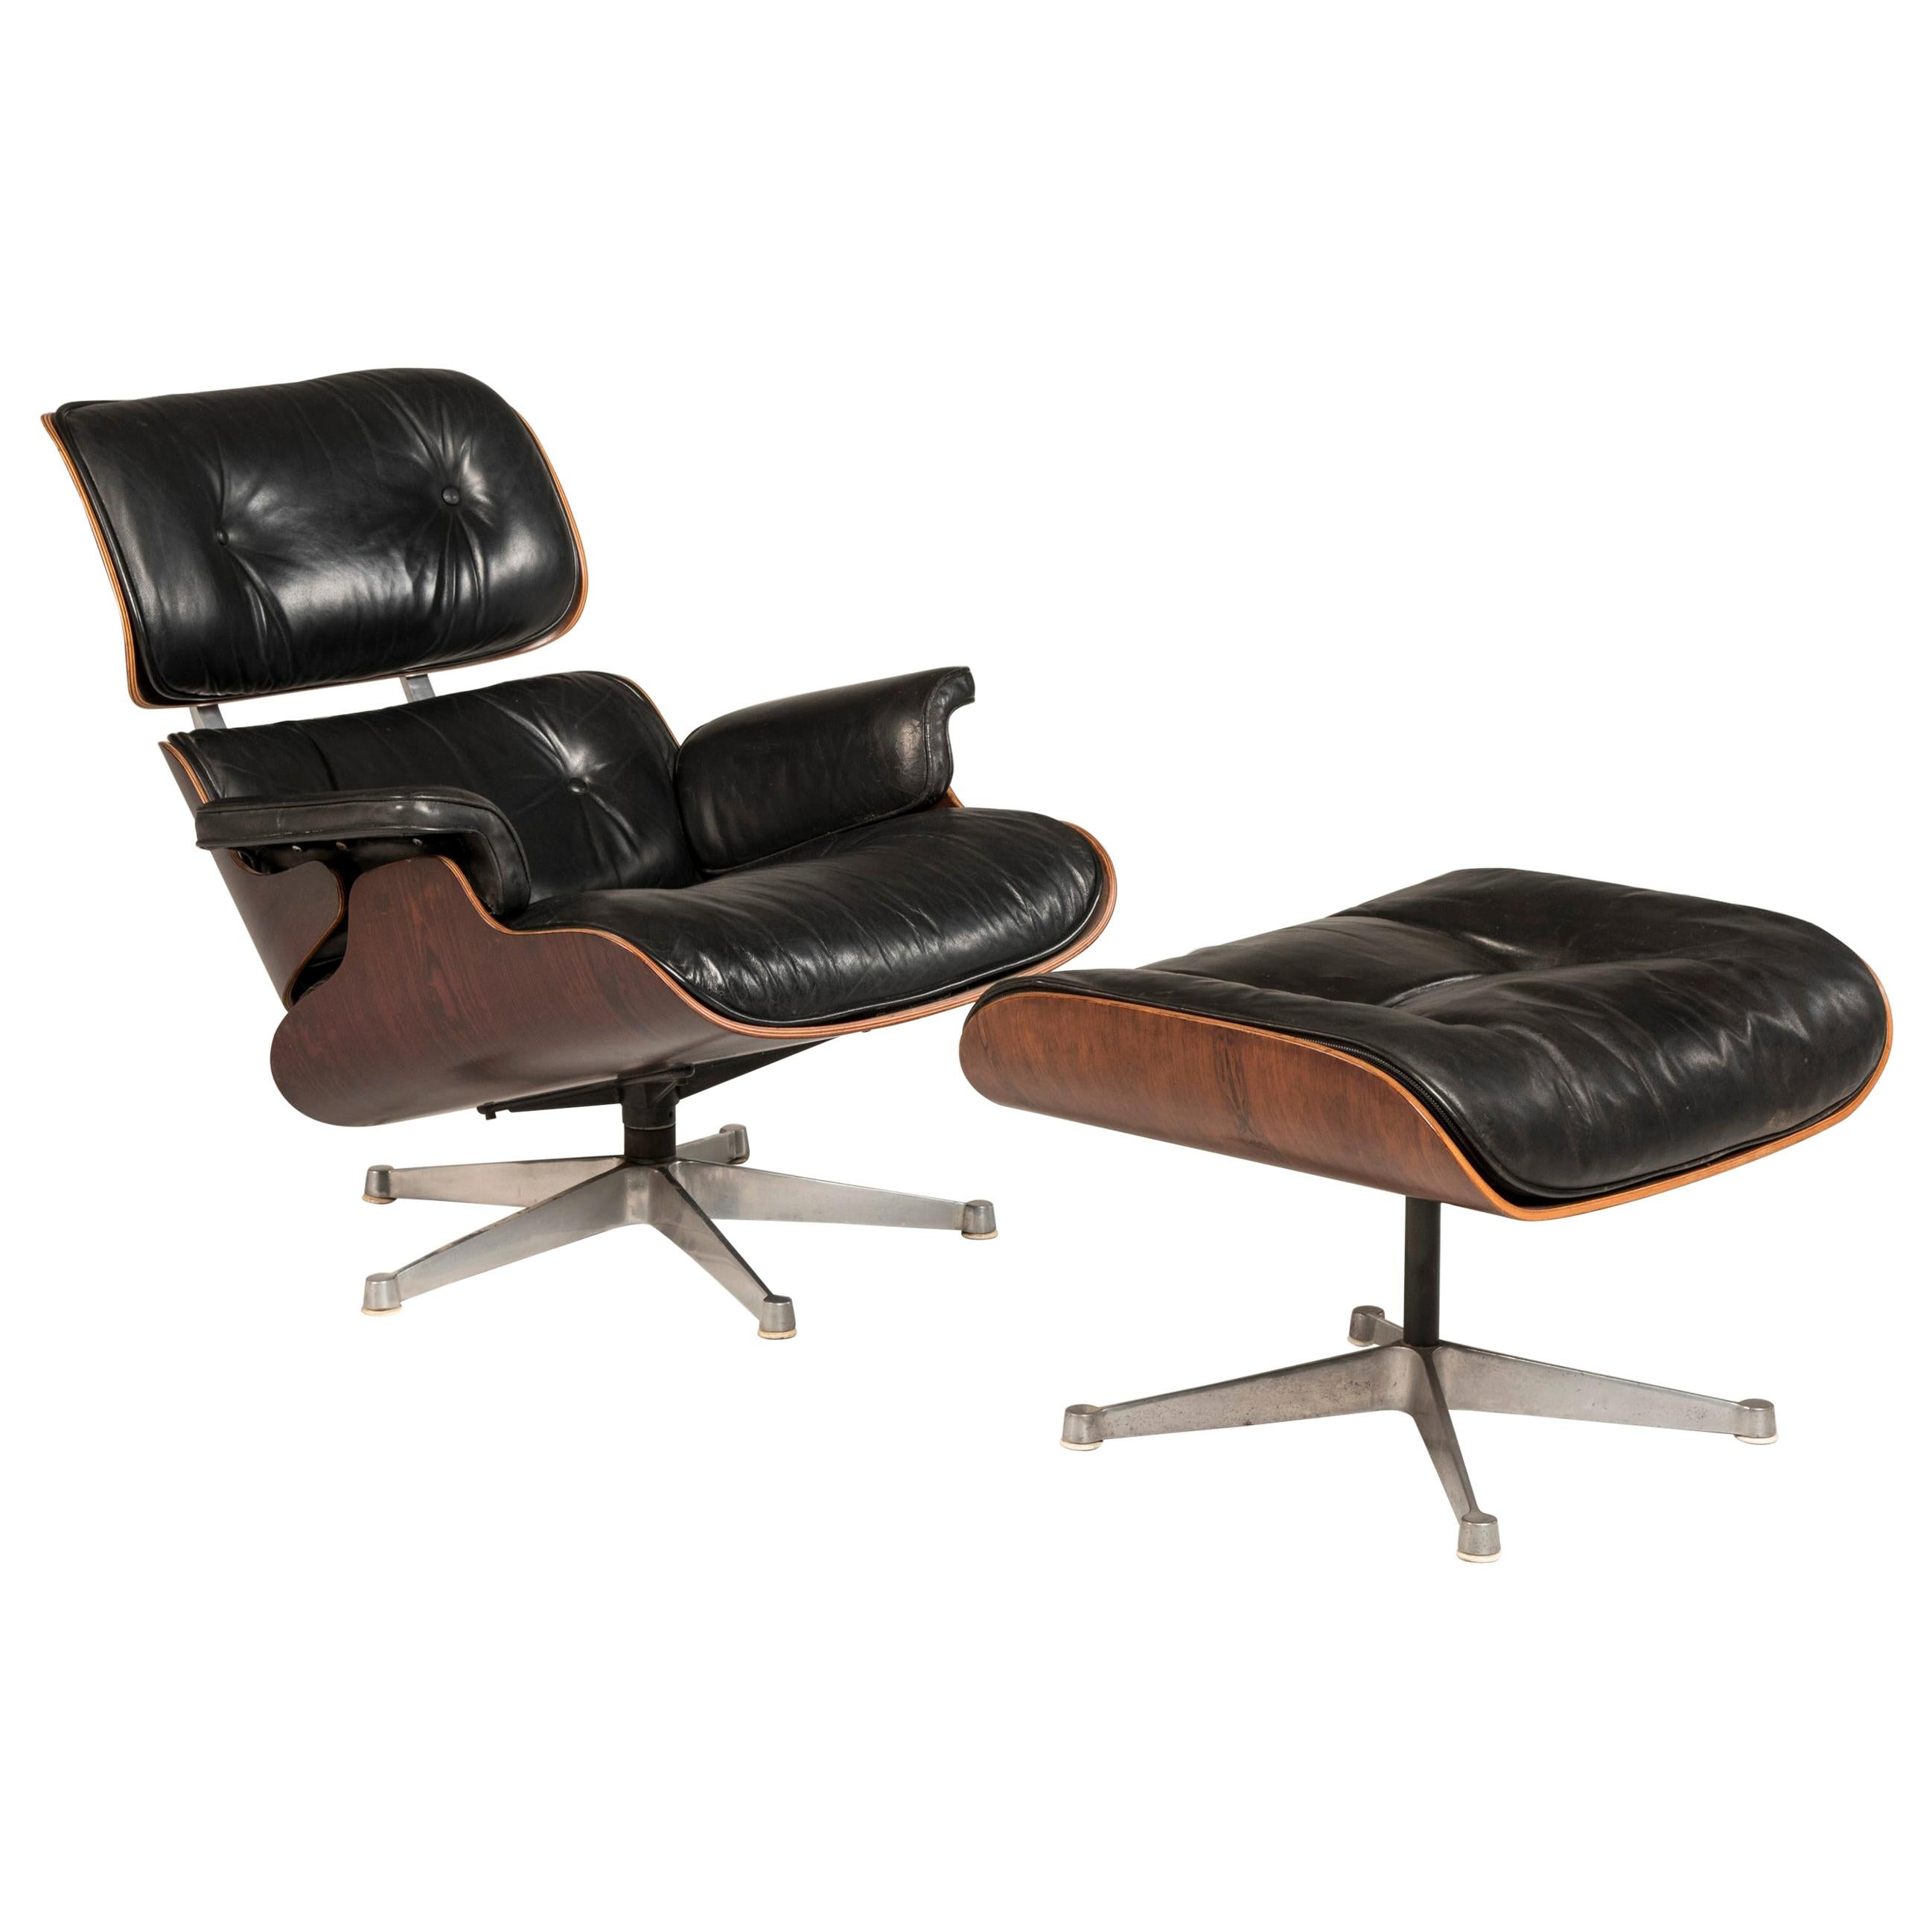 1970s Eames 670 Lounge Chair and 671 Ottoman Black Leather Herman Miller by ICF